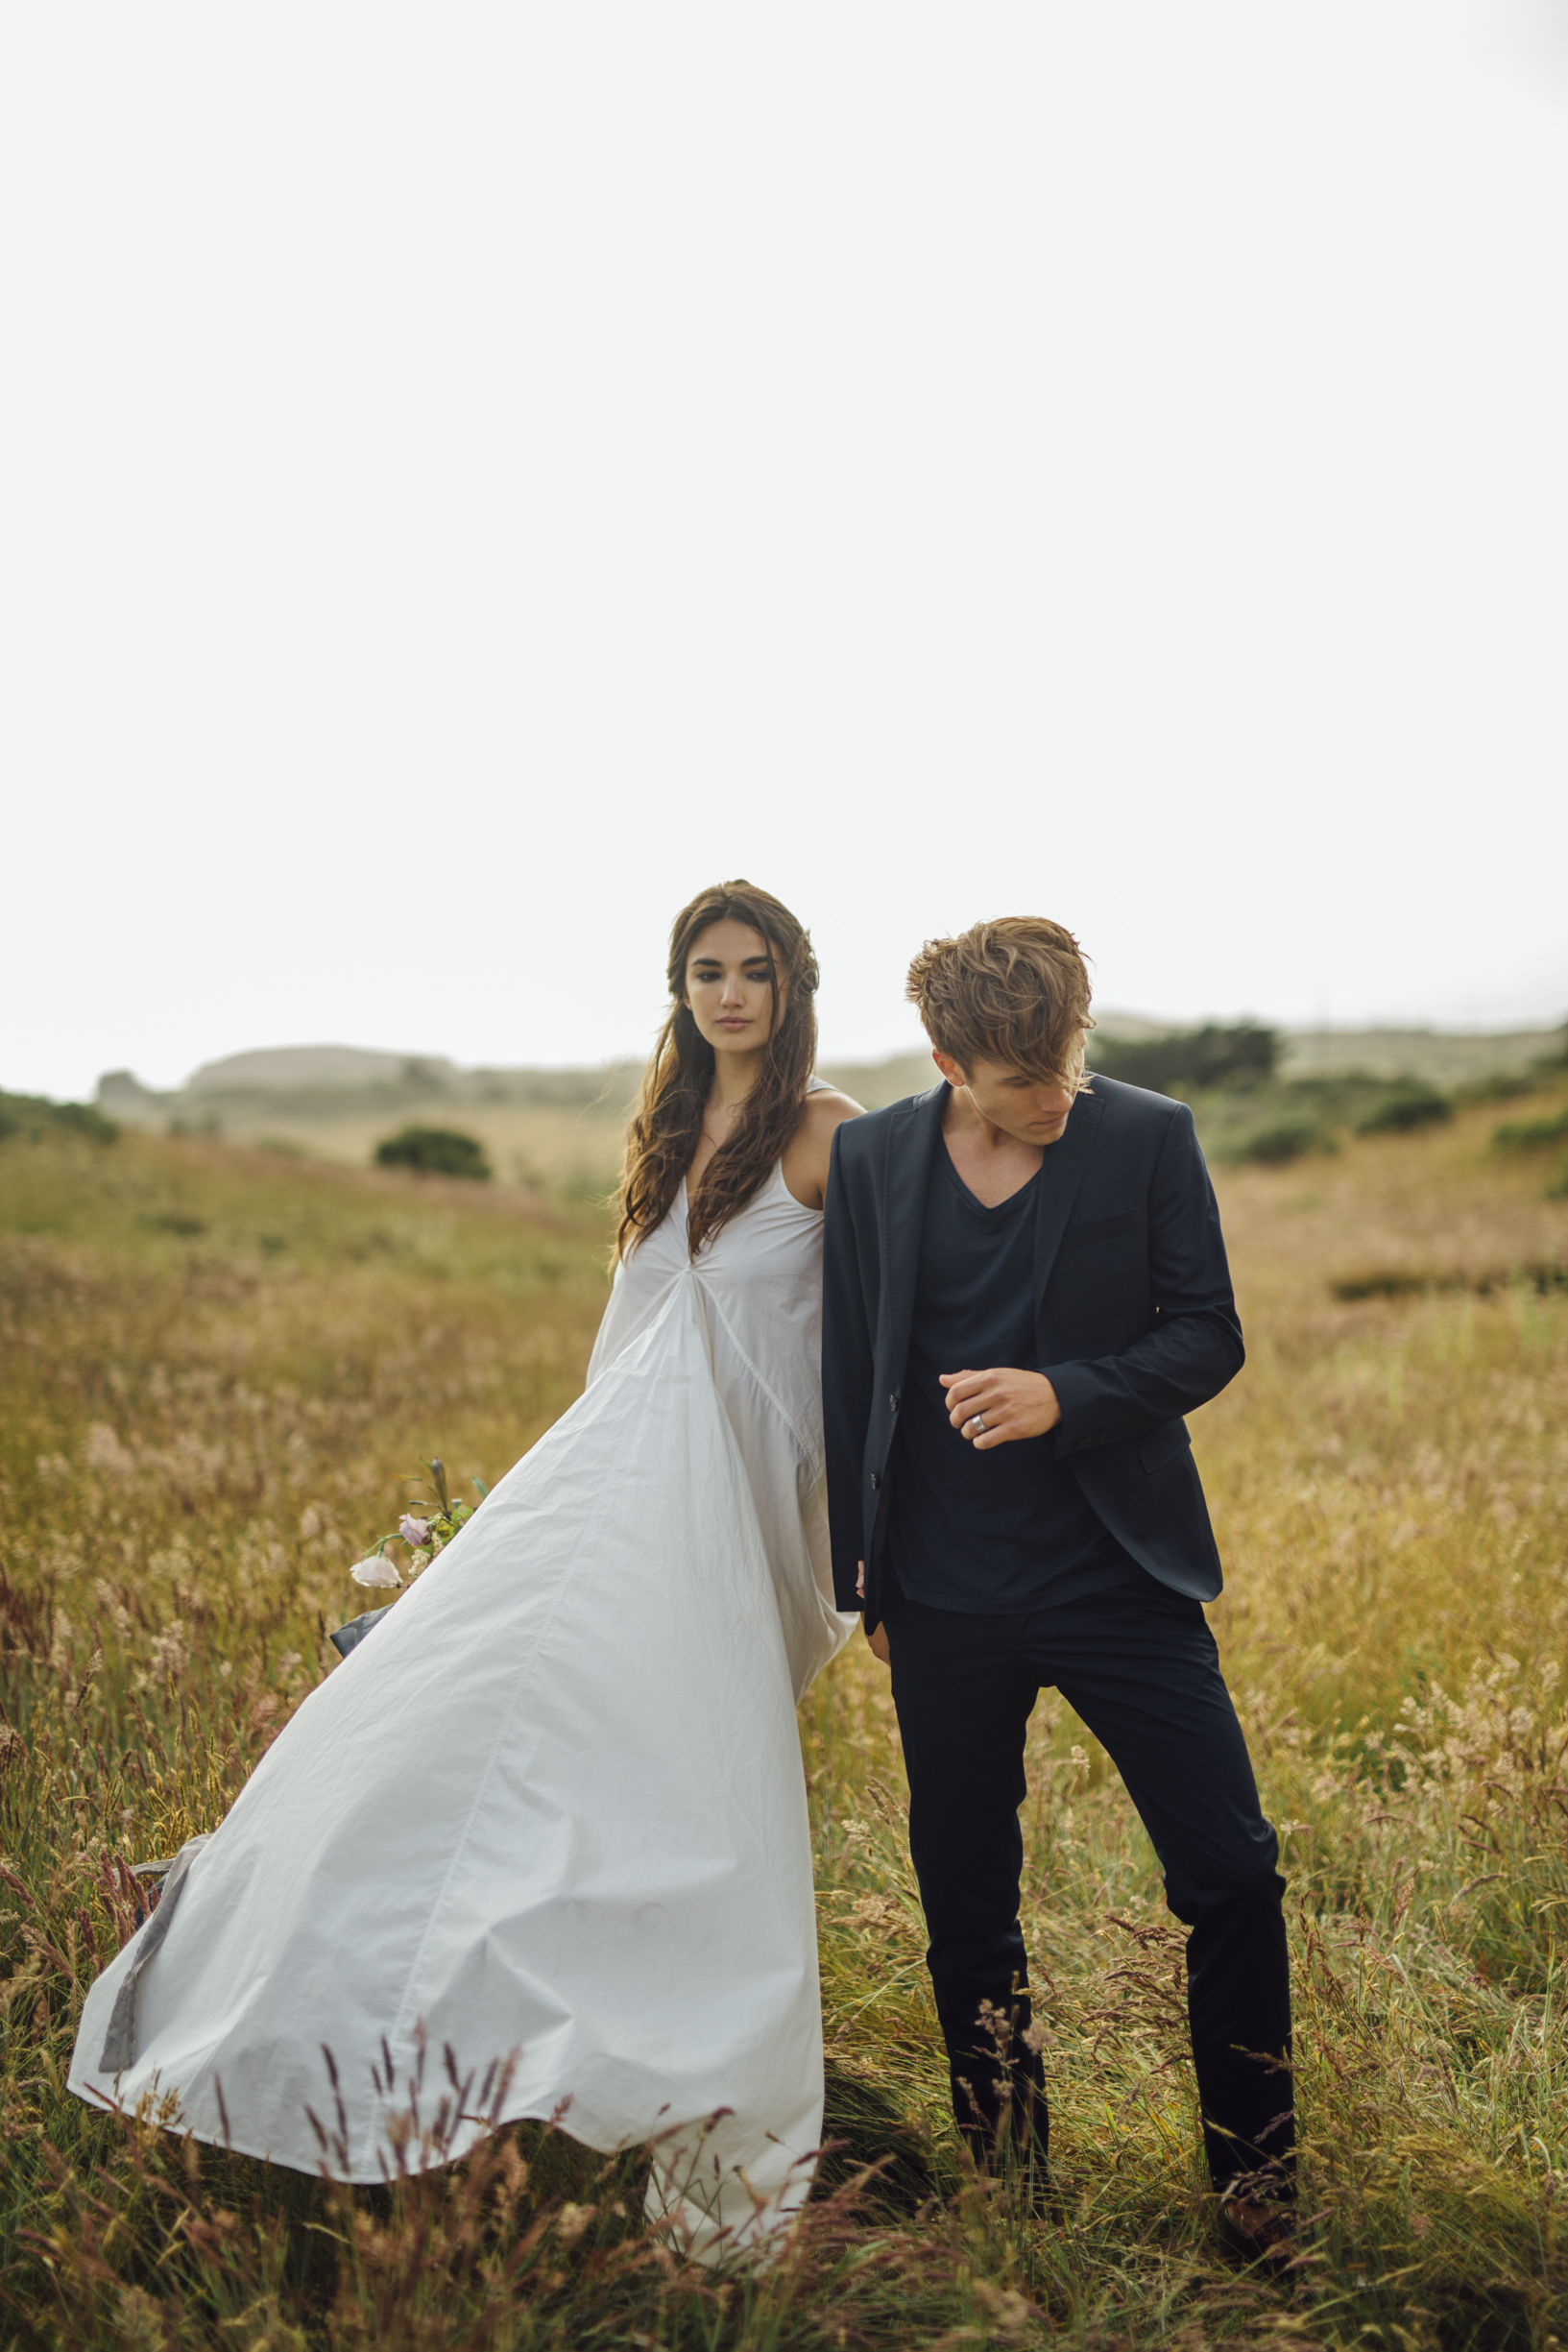 California-Wedding-Photography-by-Artur-Zaitsev-8